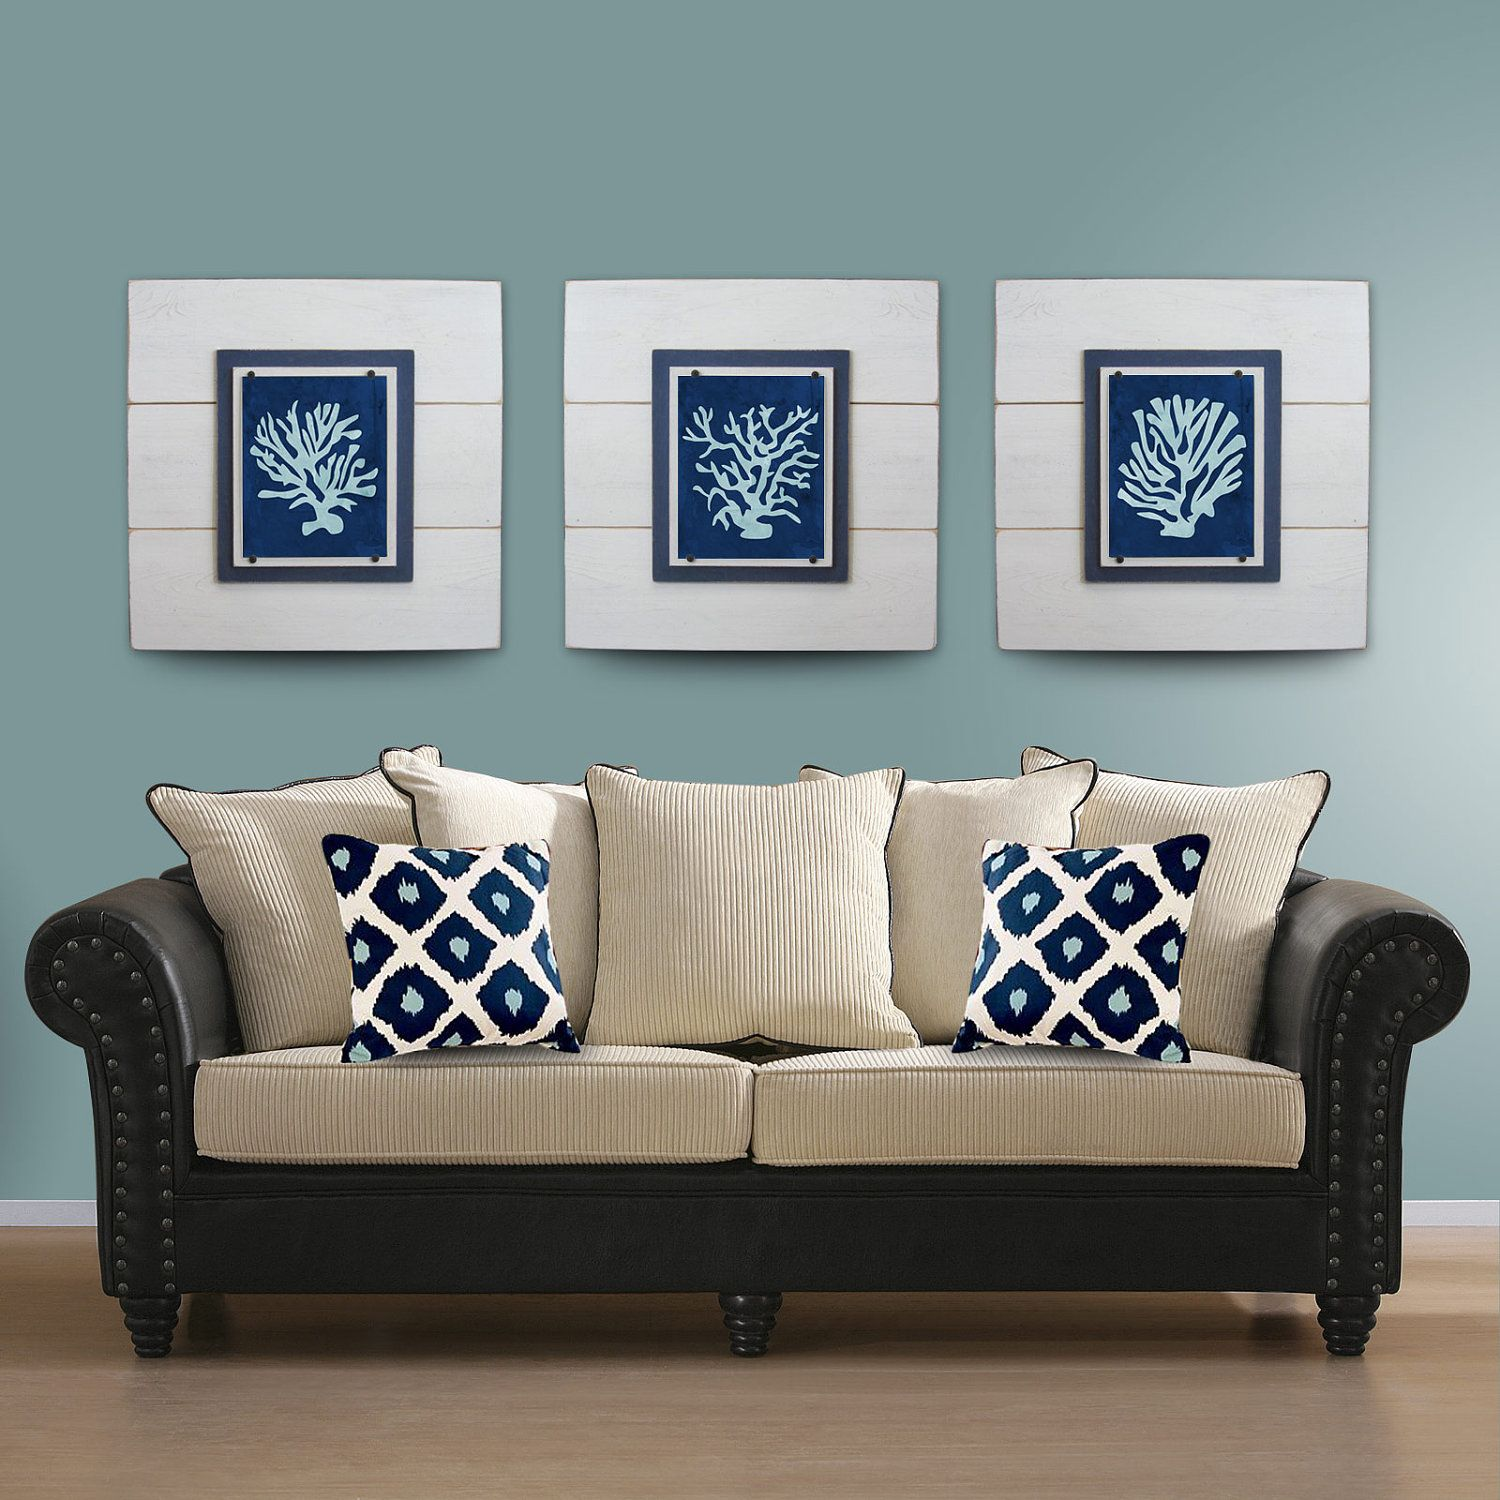 Coral wall art set of white framed x xtra large x house